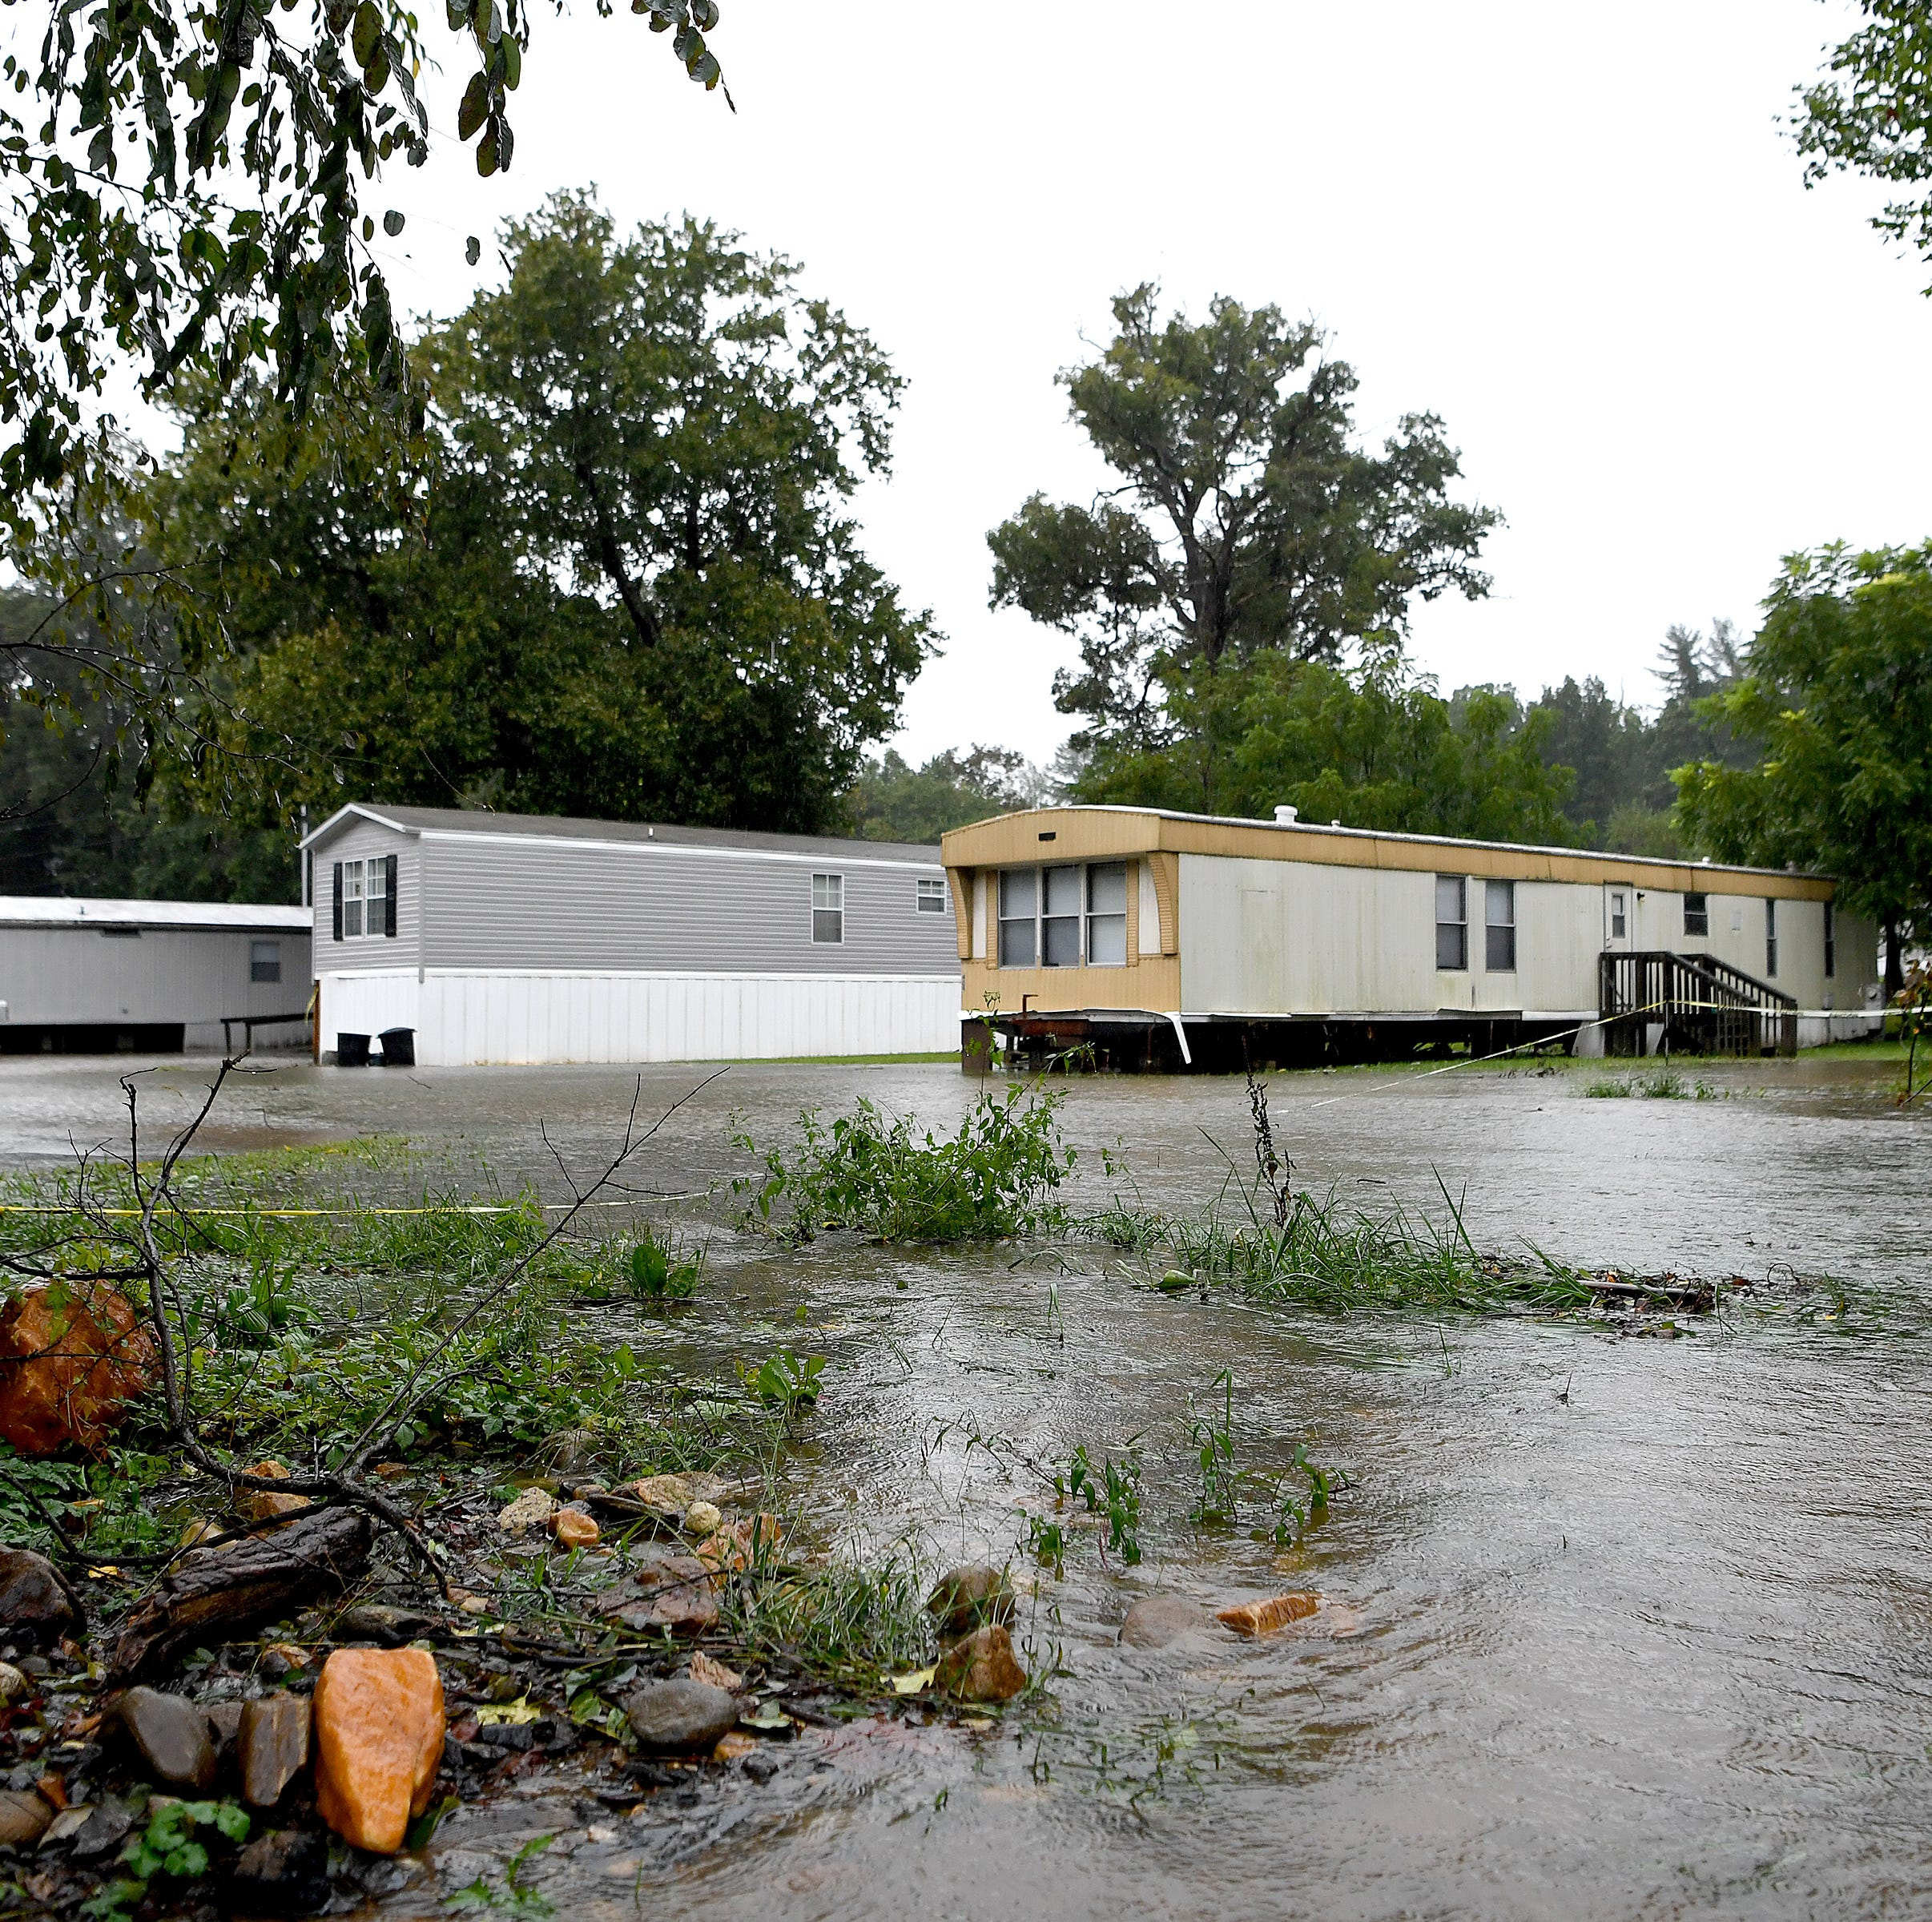 Biltmore Village, most of WNC spared by Florence, but Yancey sees some problems